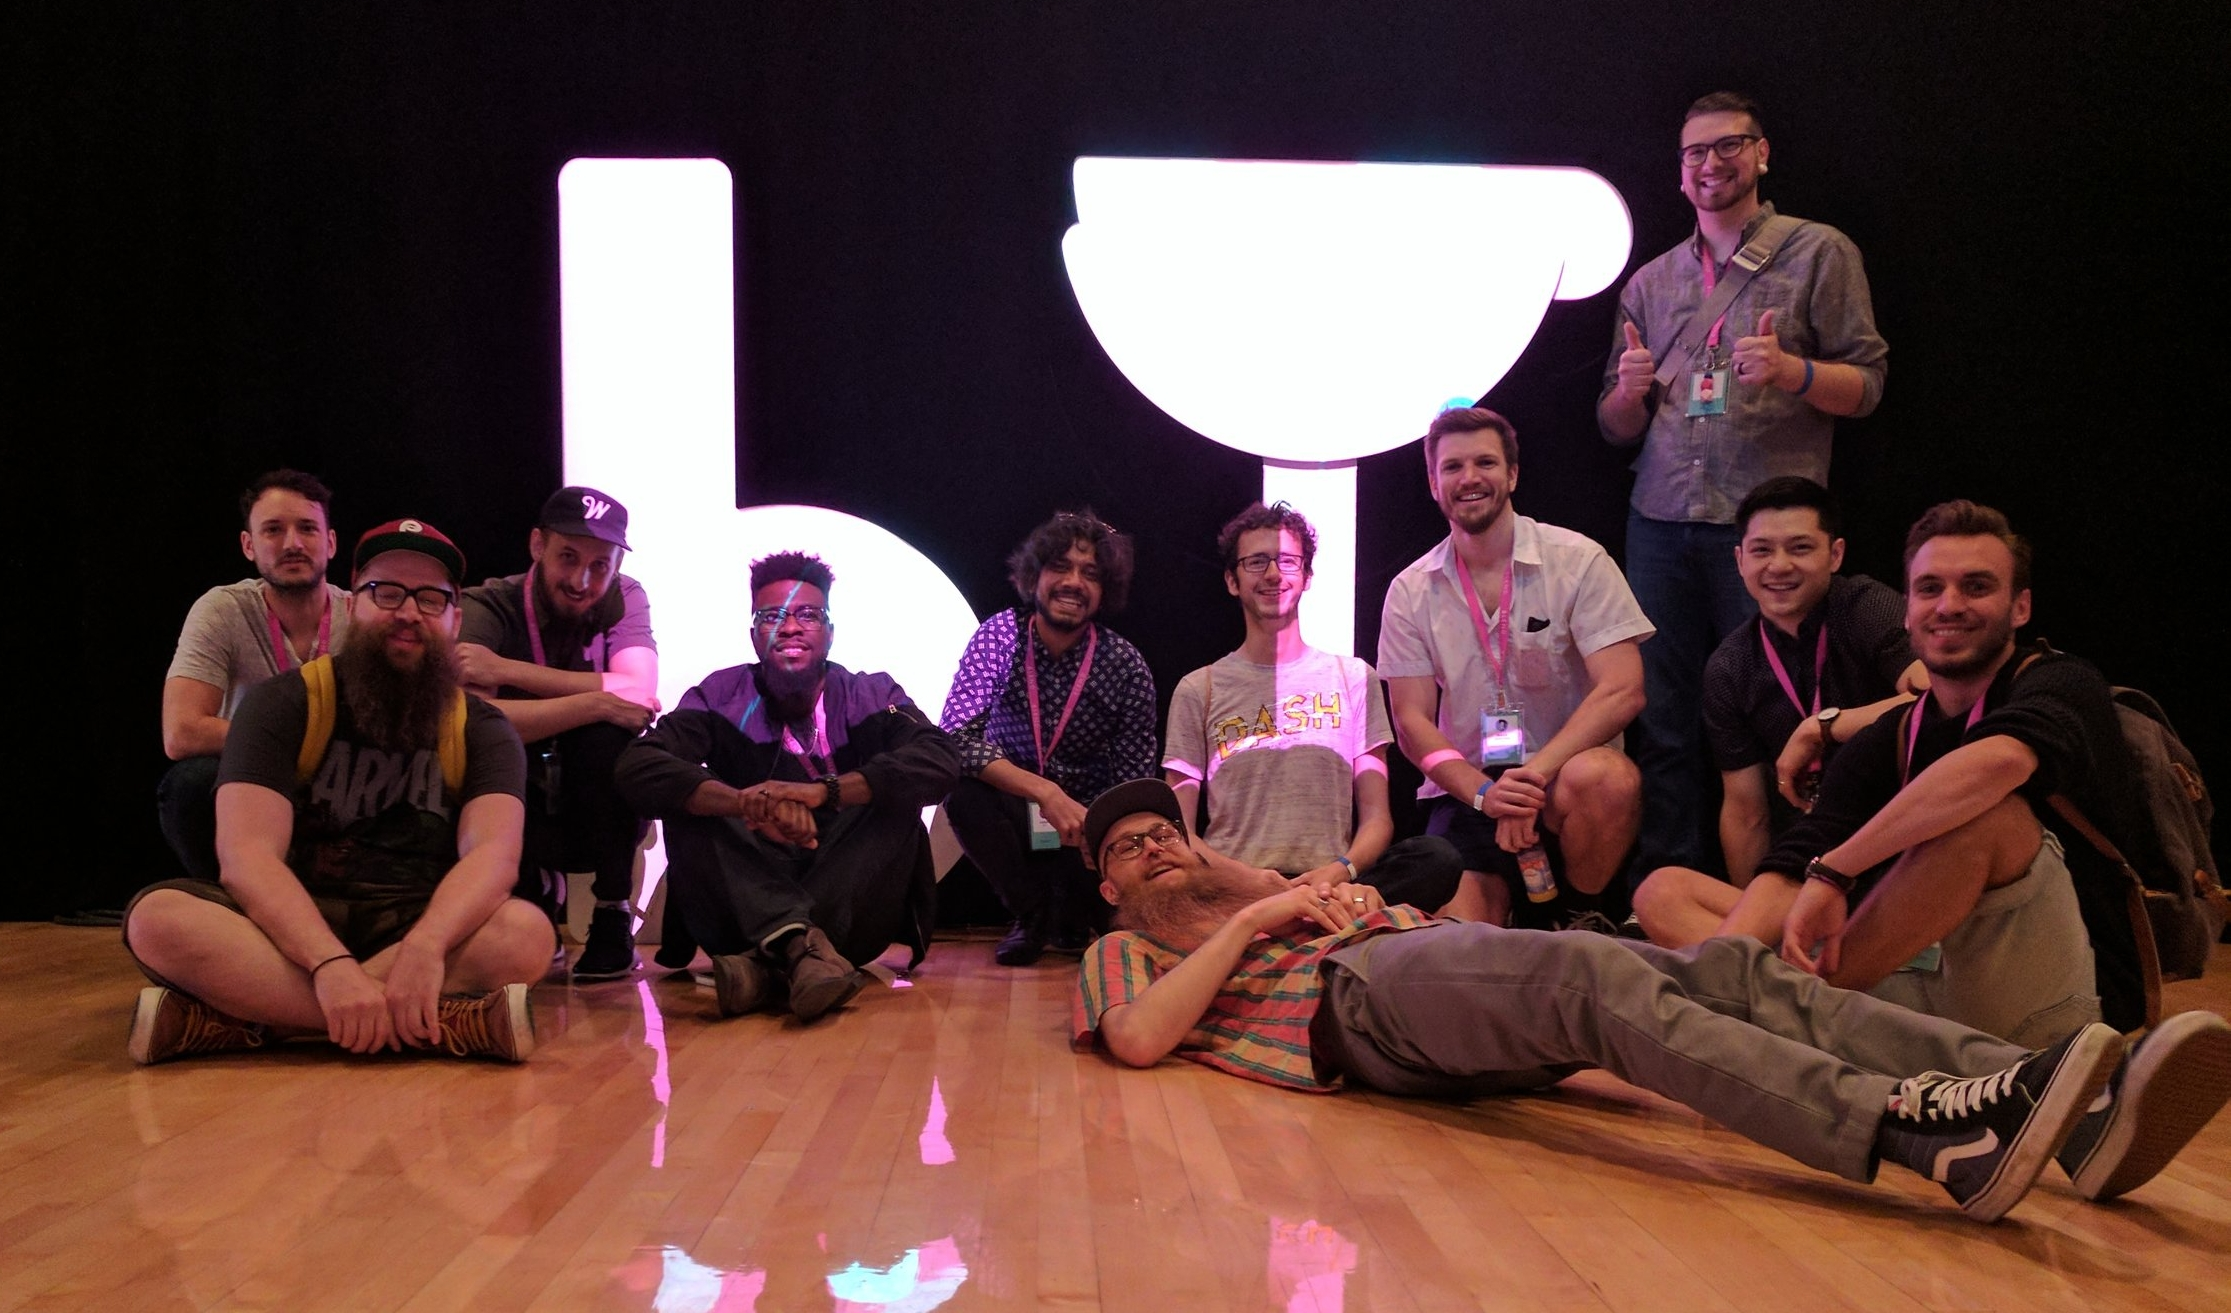 Some of the amazingly talented peeps who worked on this piece, and were able to make it to Blend 2017!